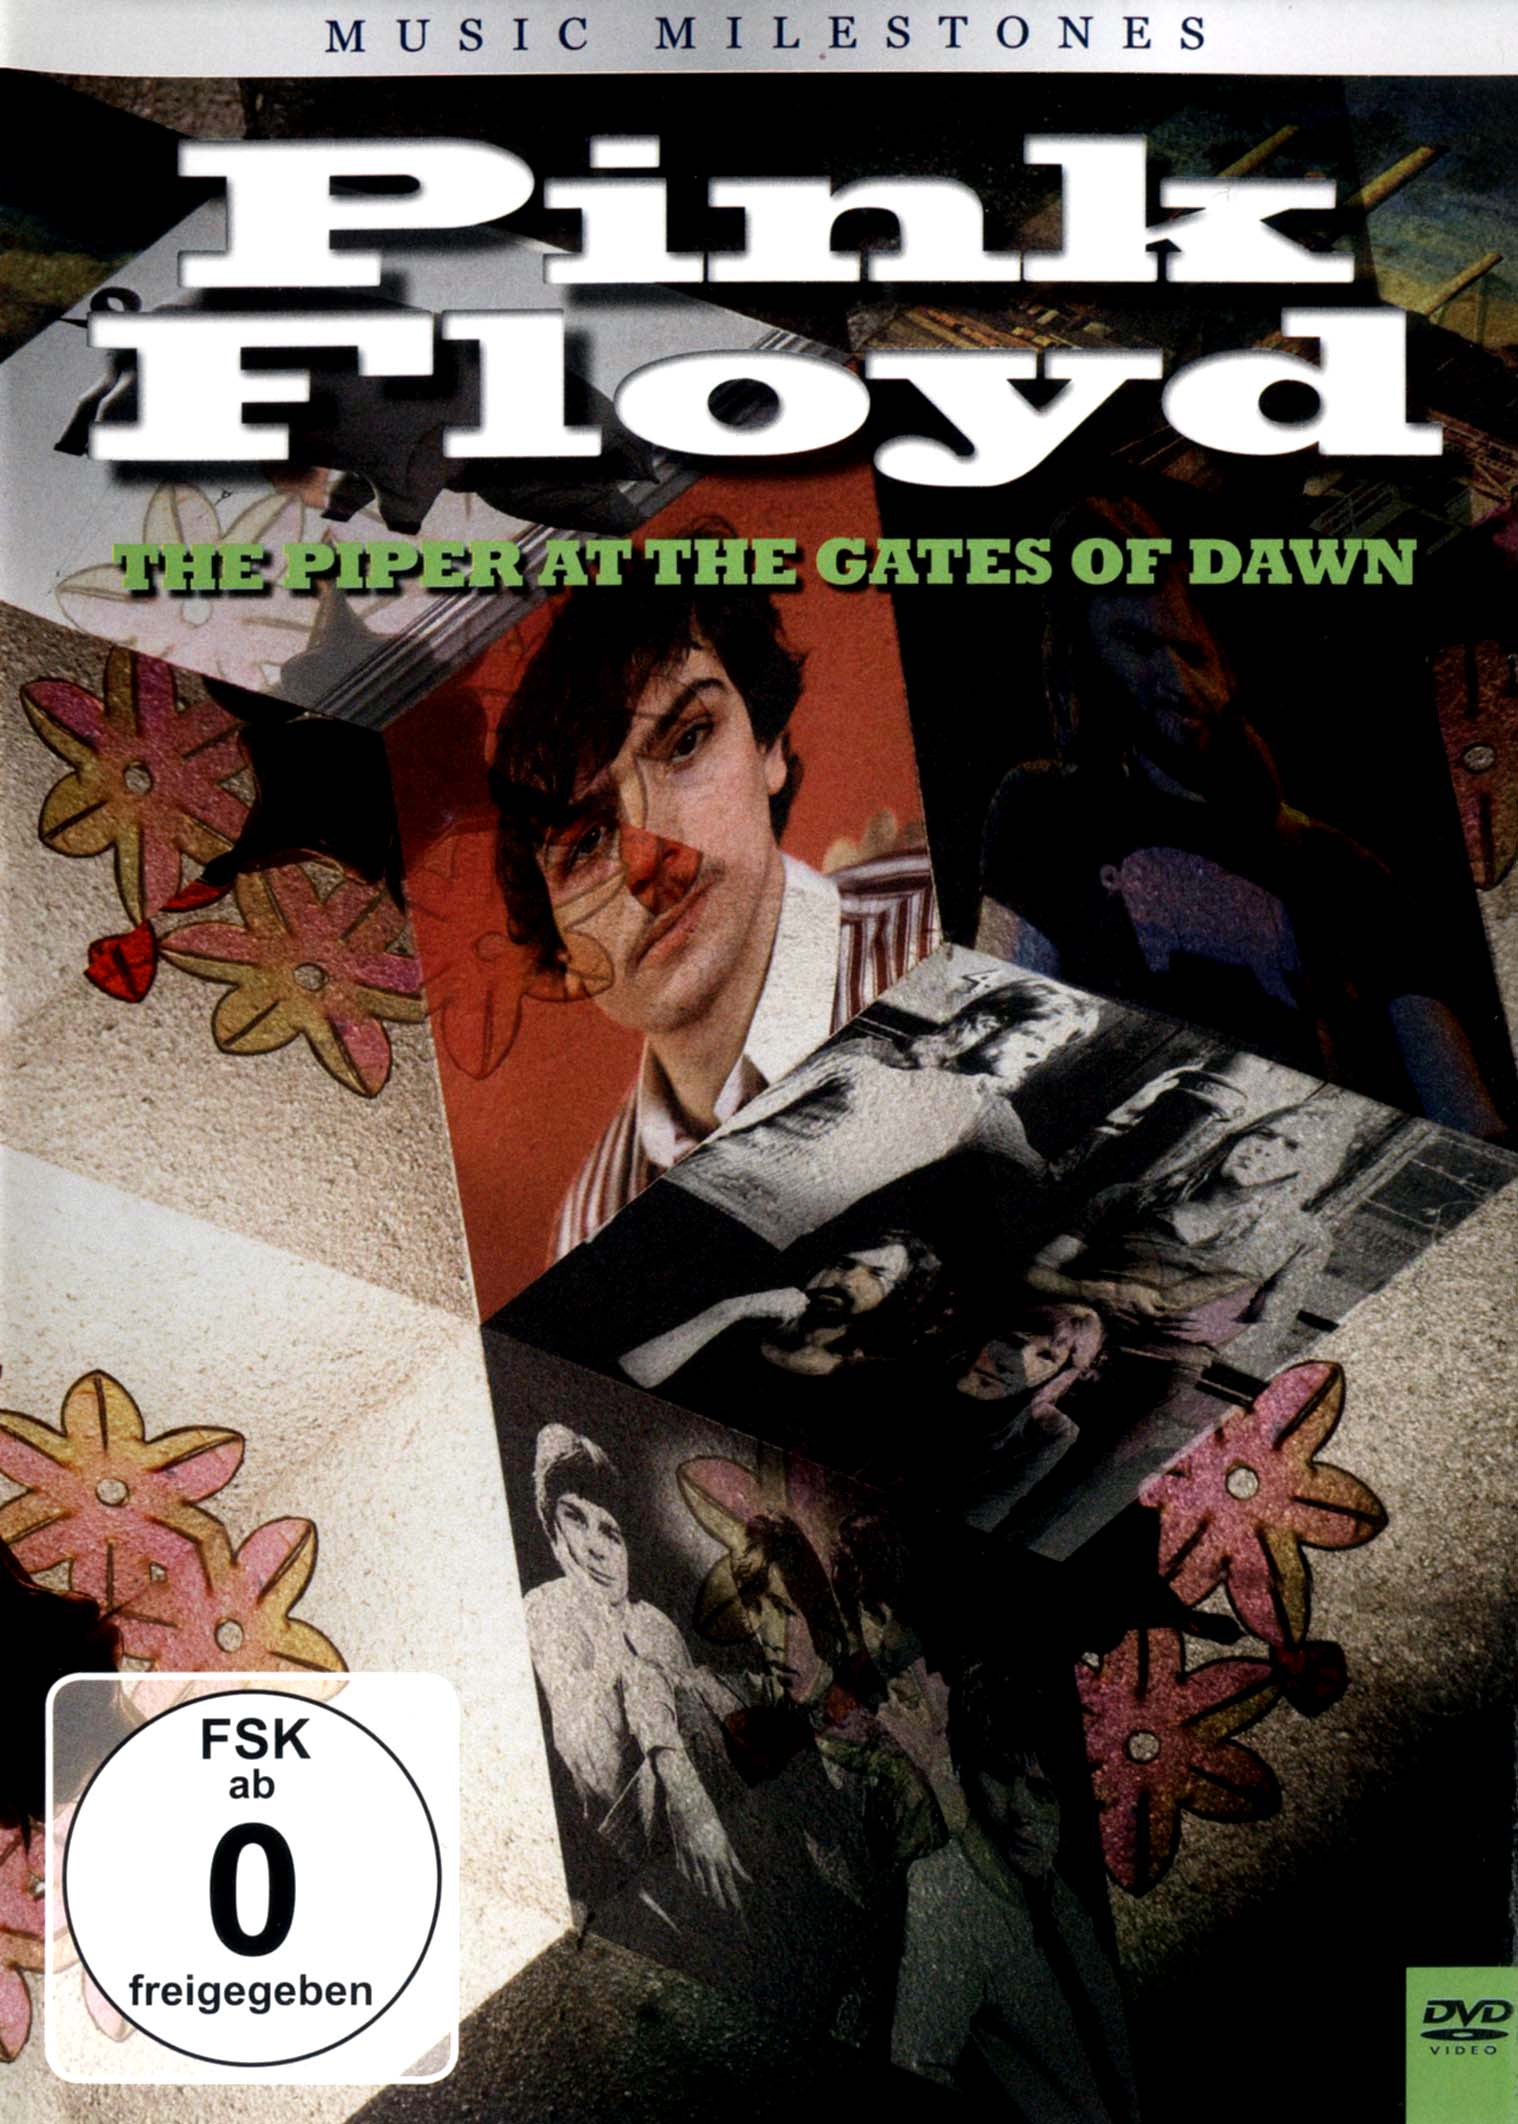 Pink Floyd: Music Milestones - Piper at the Gates of Dawn